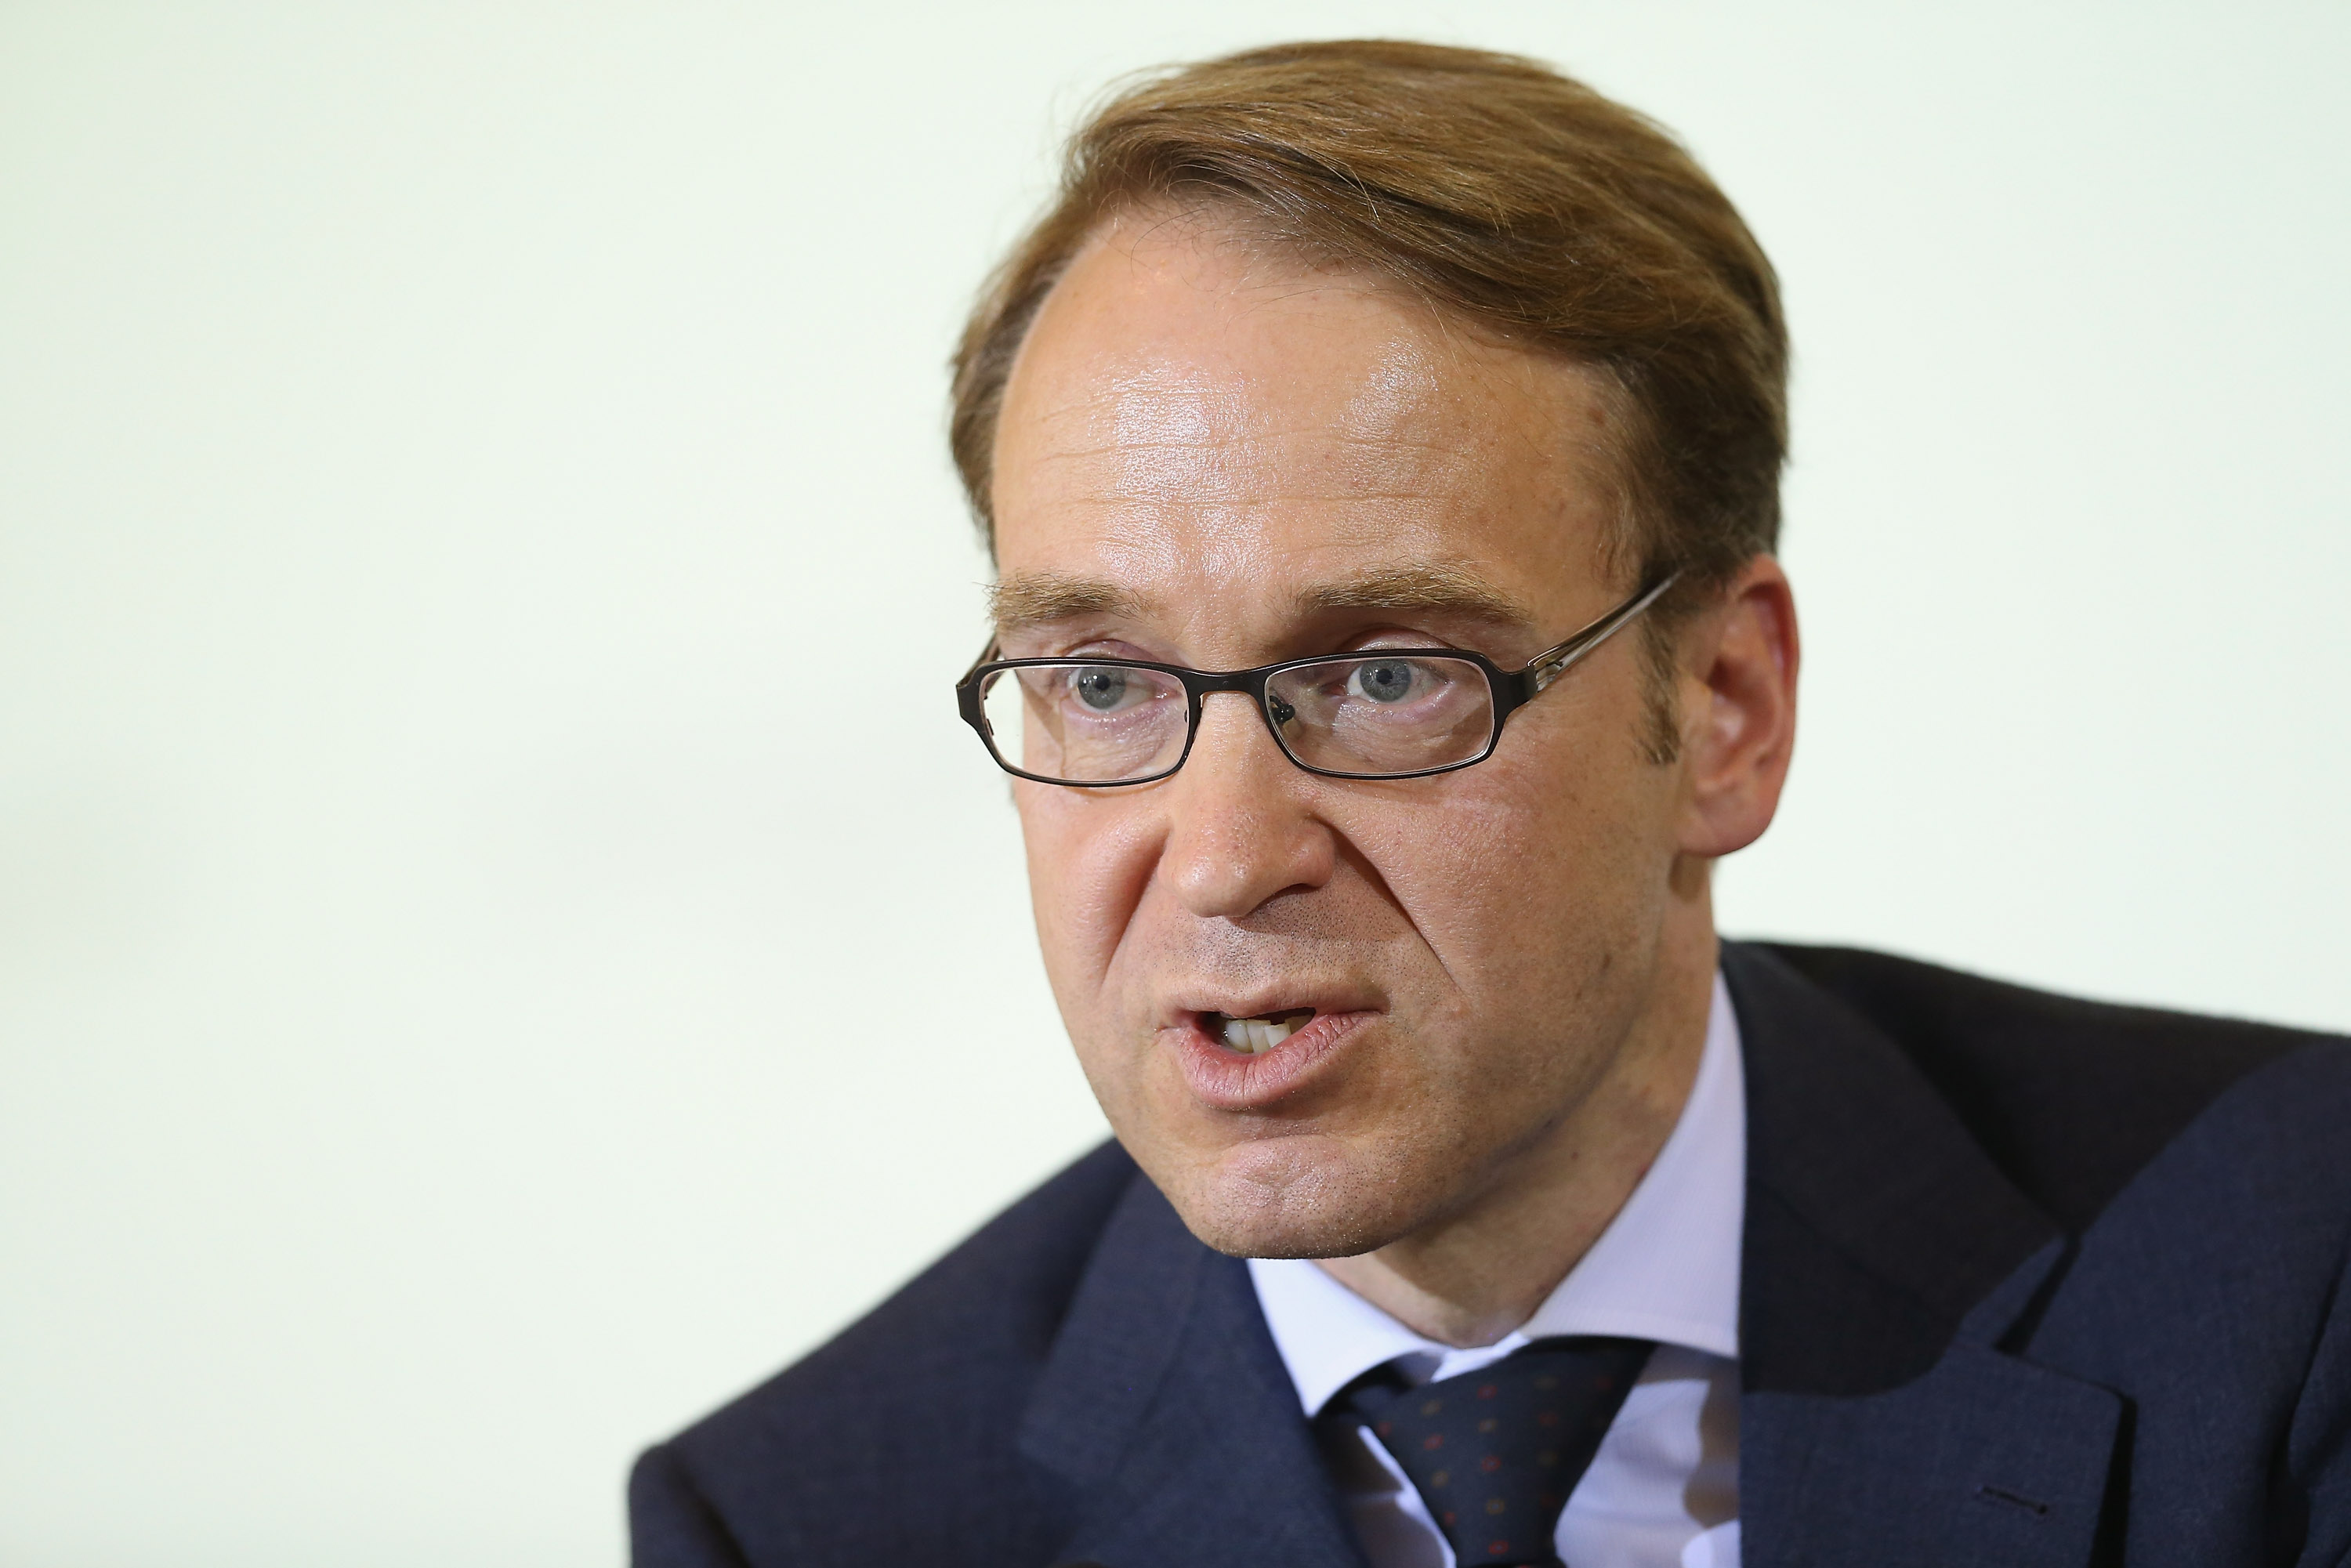 Even the ultra-conservative Bundesbank accepts the eurozone needs more stimulus, its president said Tuesday